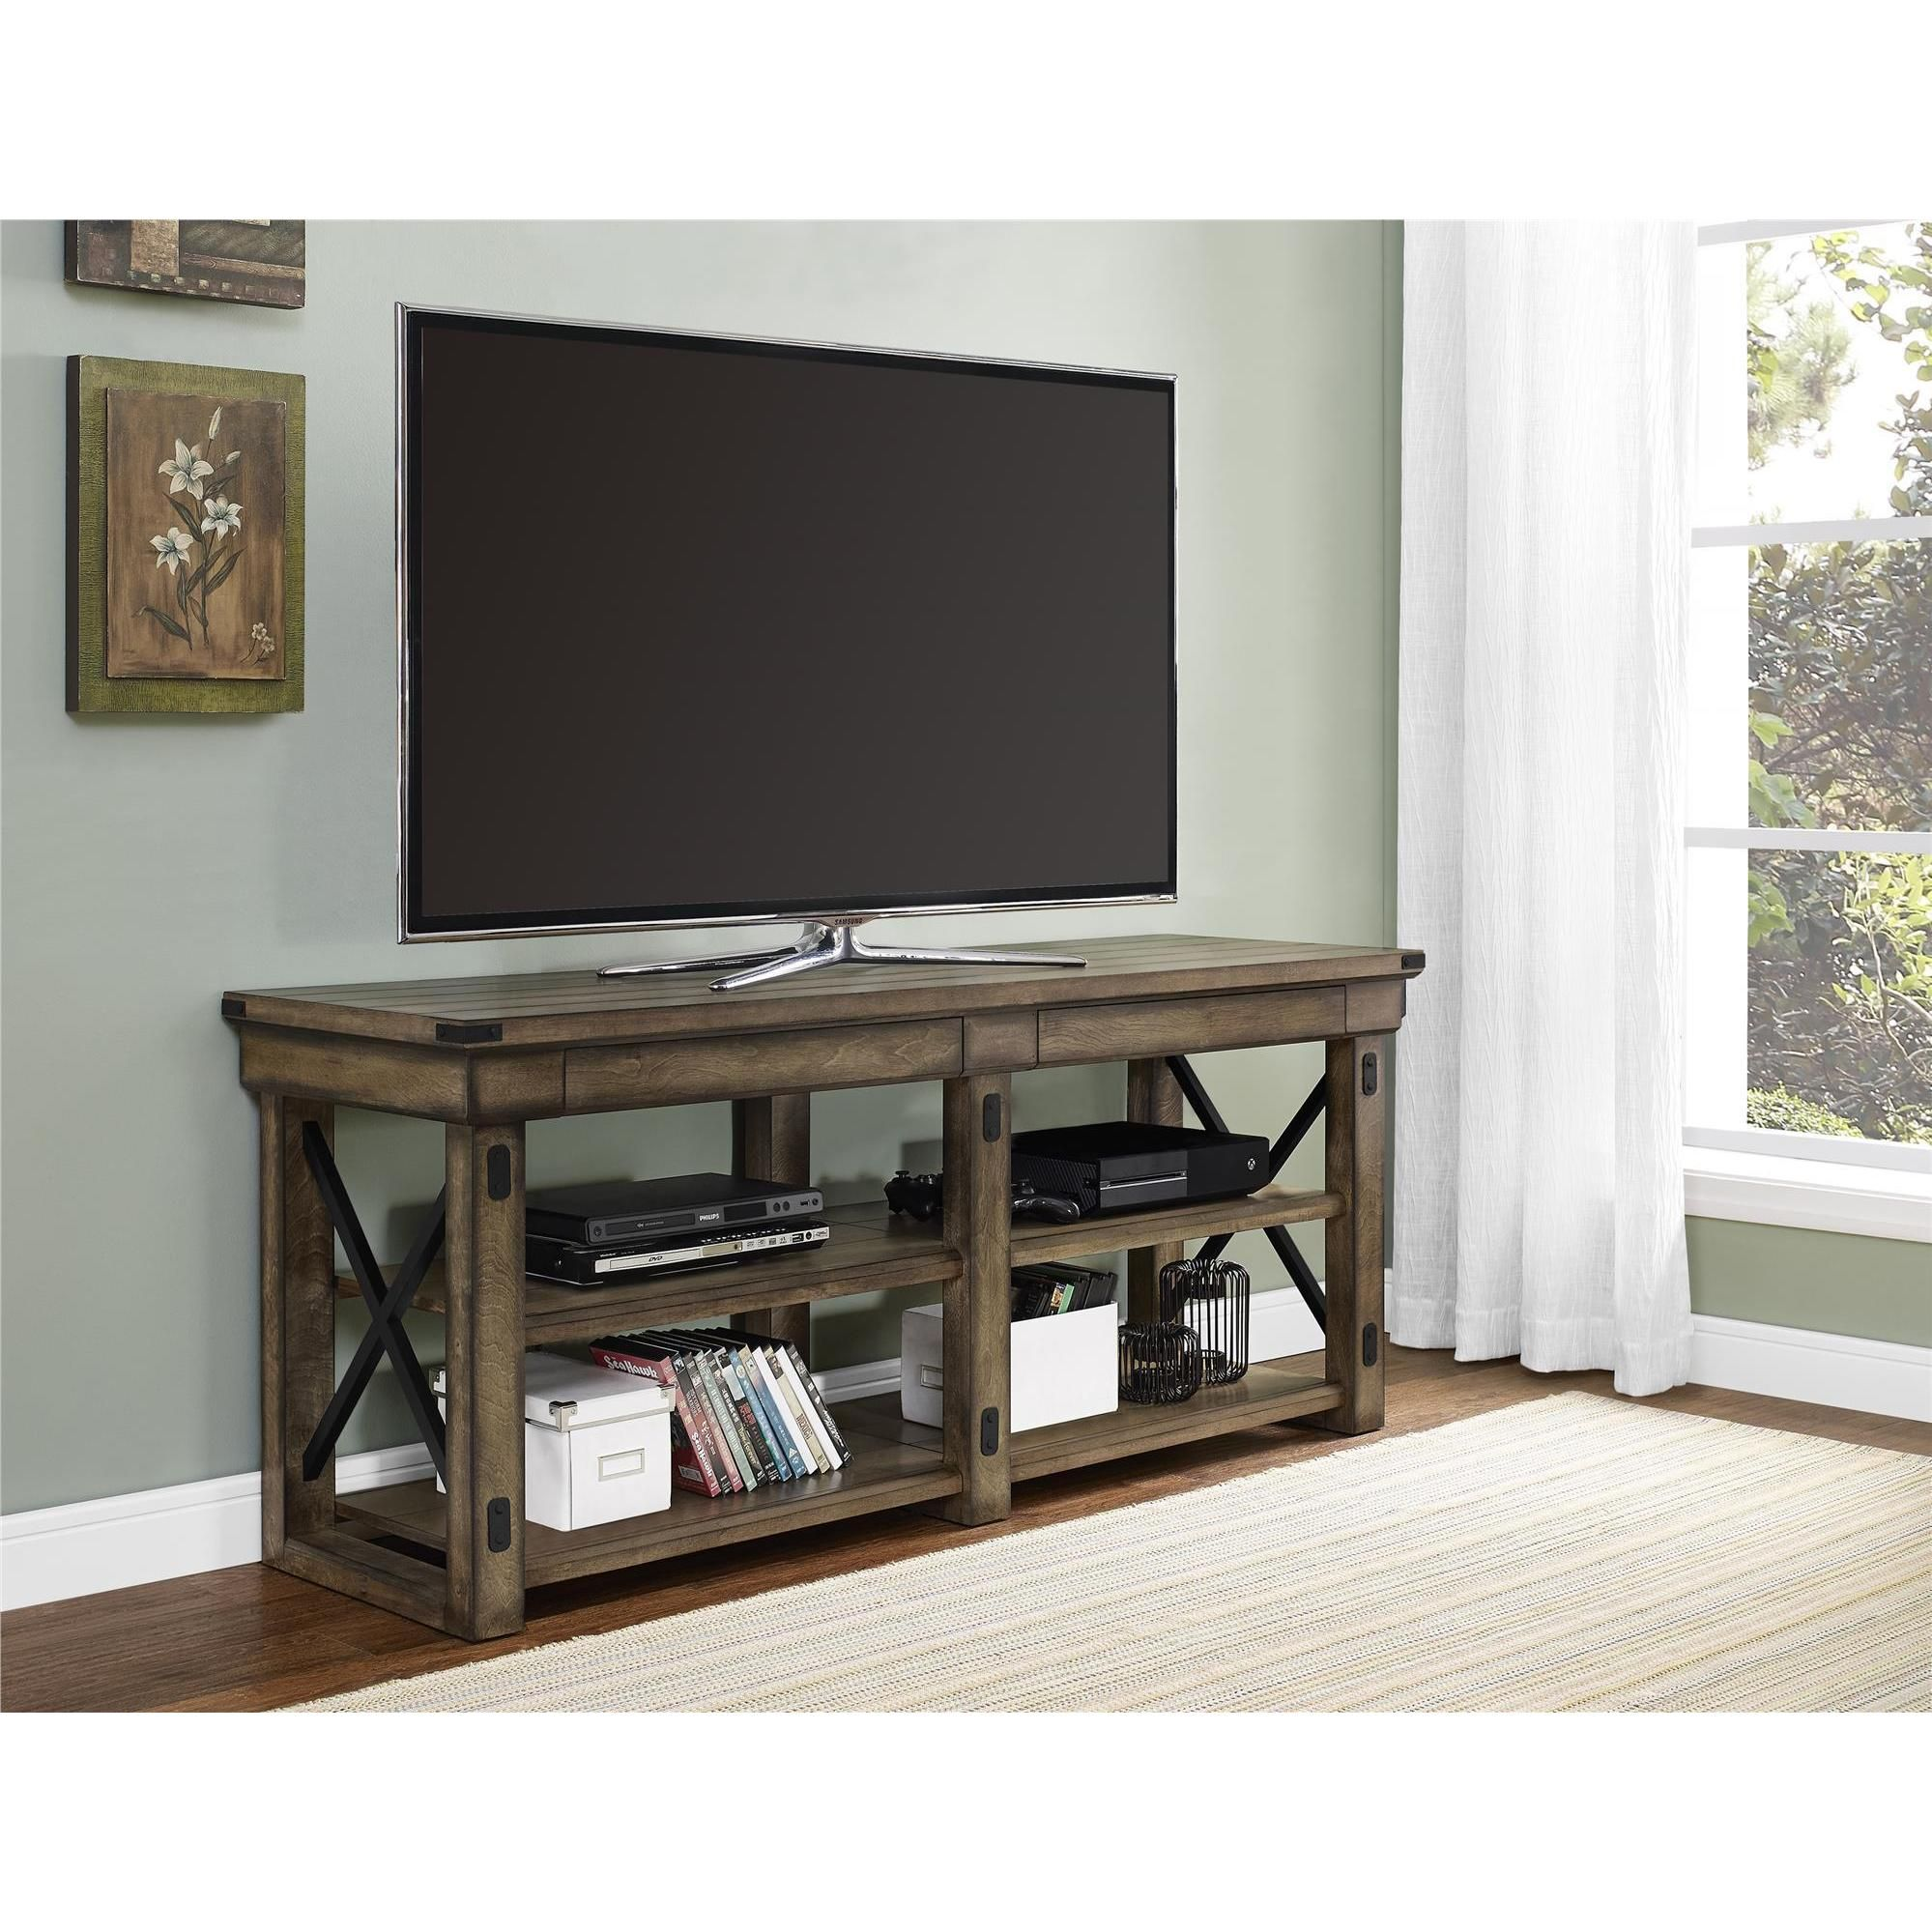 Bring Beauty And Better Organization Into Your Living Room With The Altra Wildwood Rustic Grey Wood Veneer 65 Inch Tv Stand This Holds A Flat